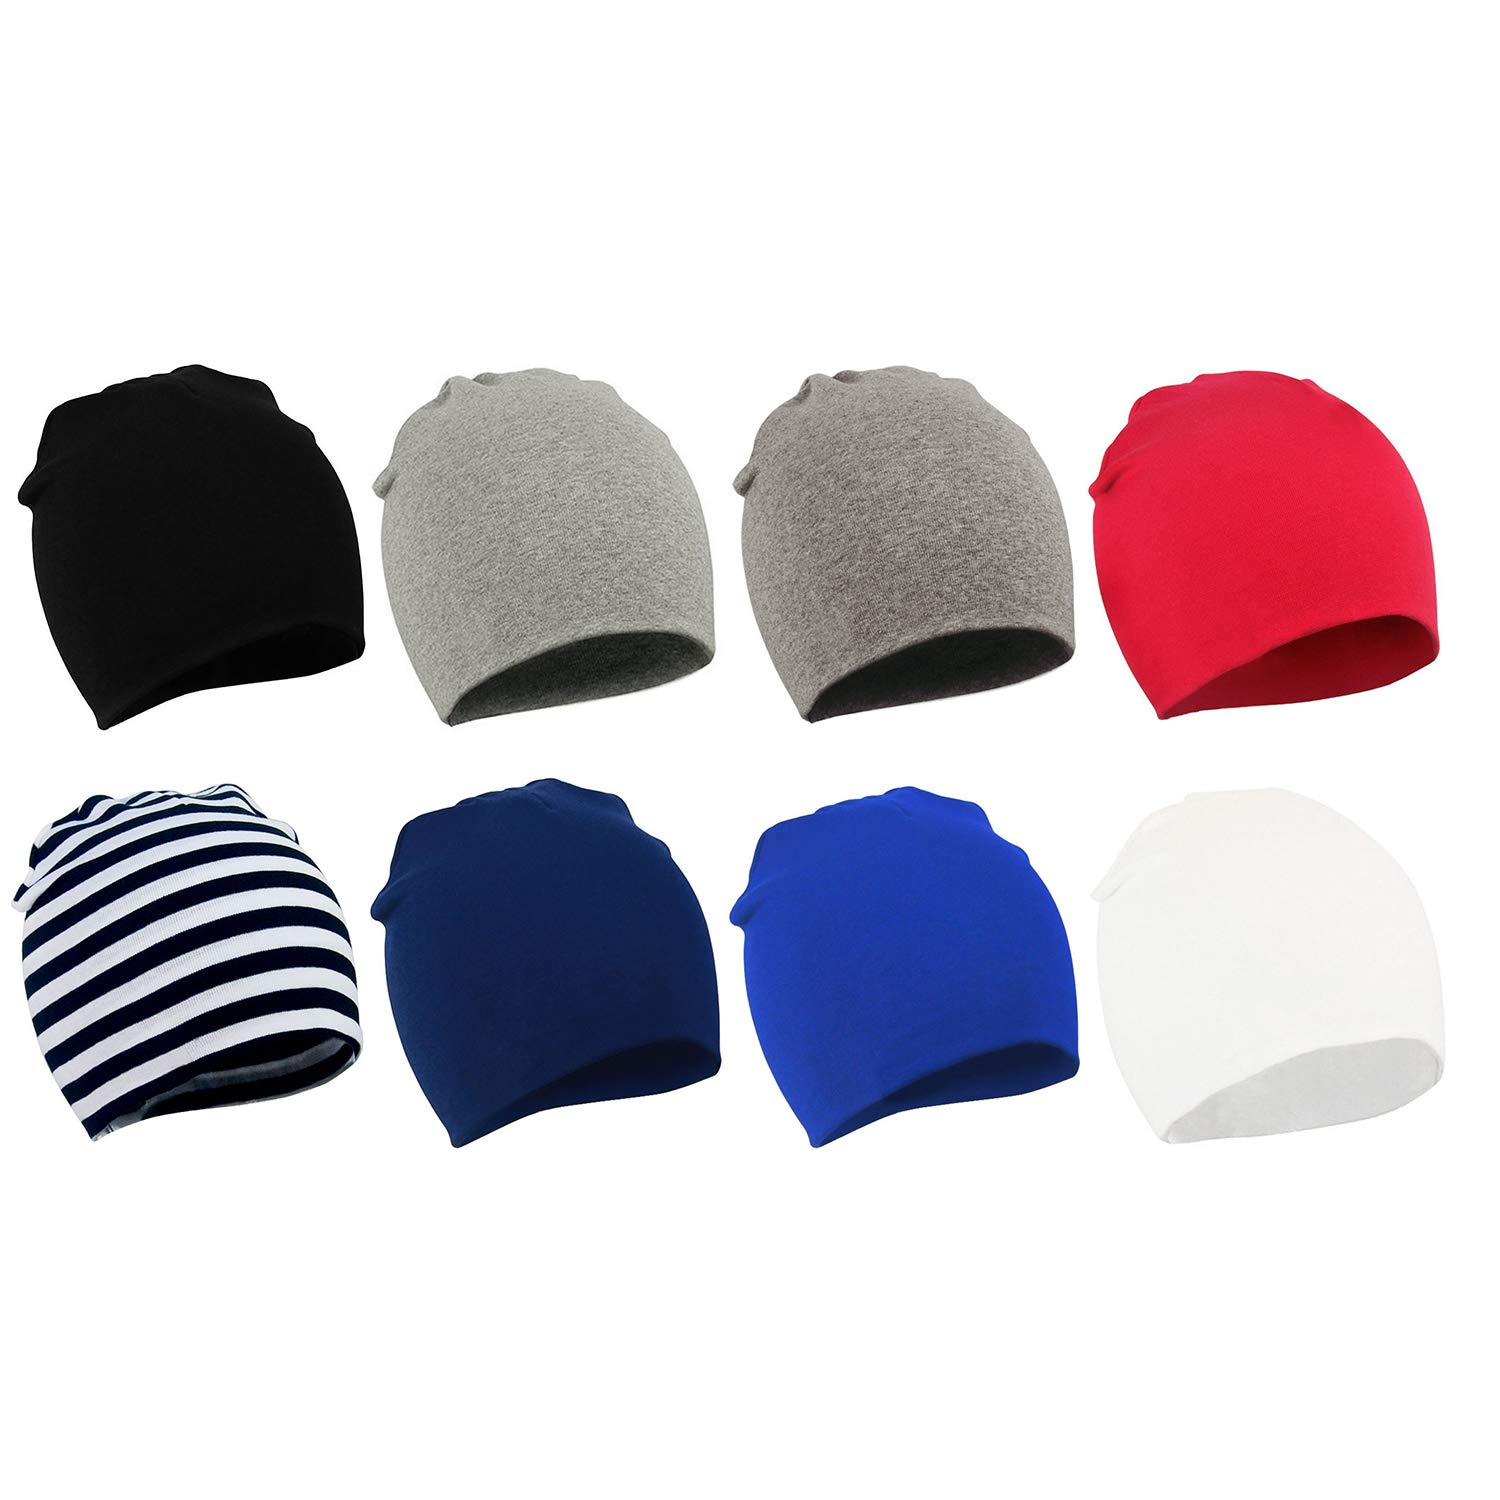 Zando Baby Hats and Caps Soft Cute Cotton Beanie Hat for Girls Boys Toddler Beanies Kids Children Gifts 8 Pack 4S Small (0-12 months) by Zando